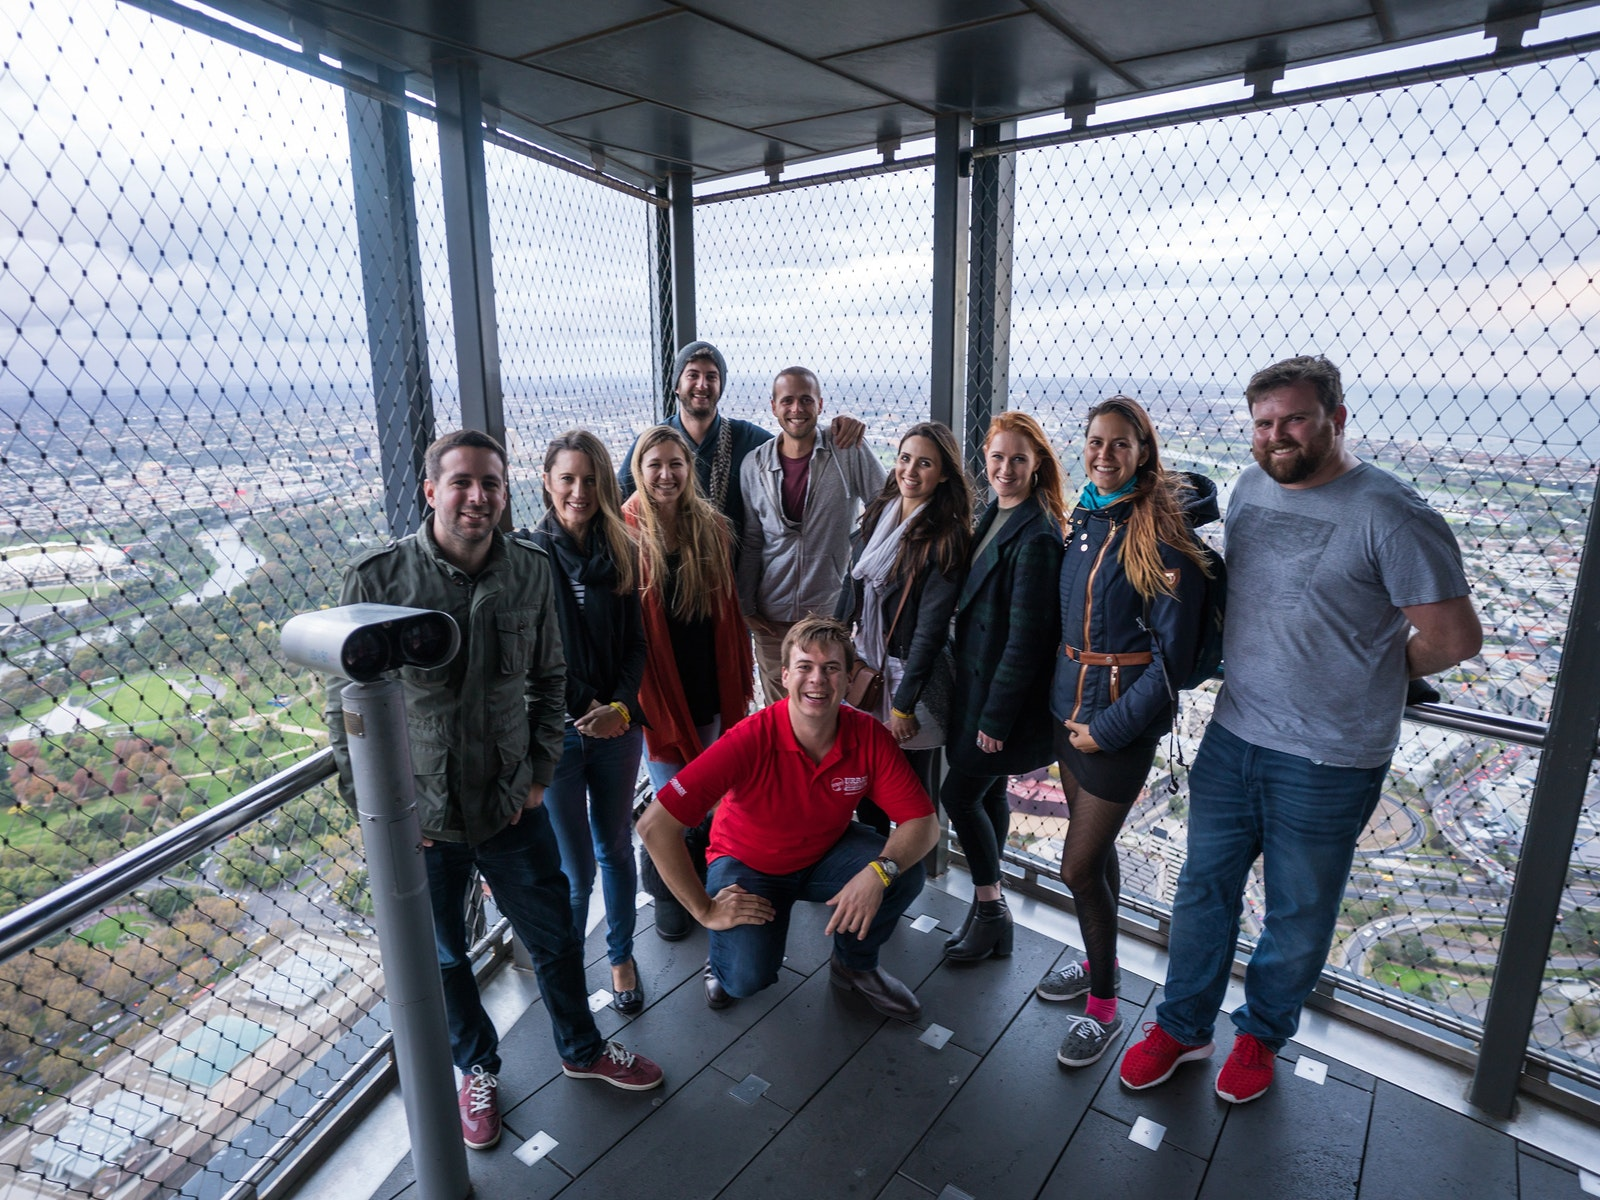 Melbourne Bites and Sights Tour (with Eureka Skydeck)